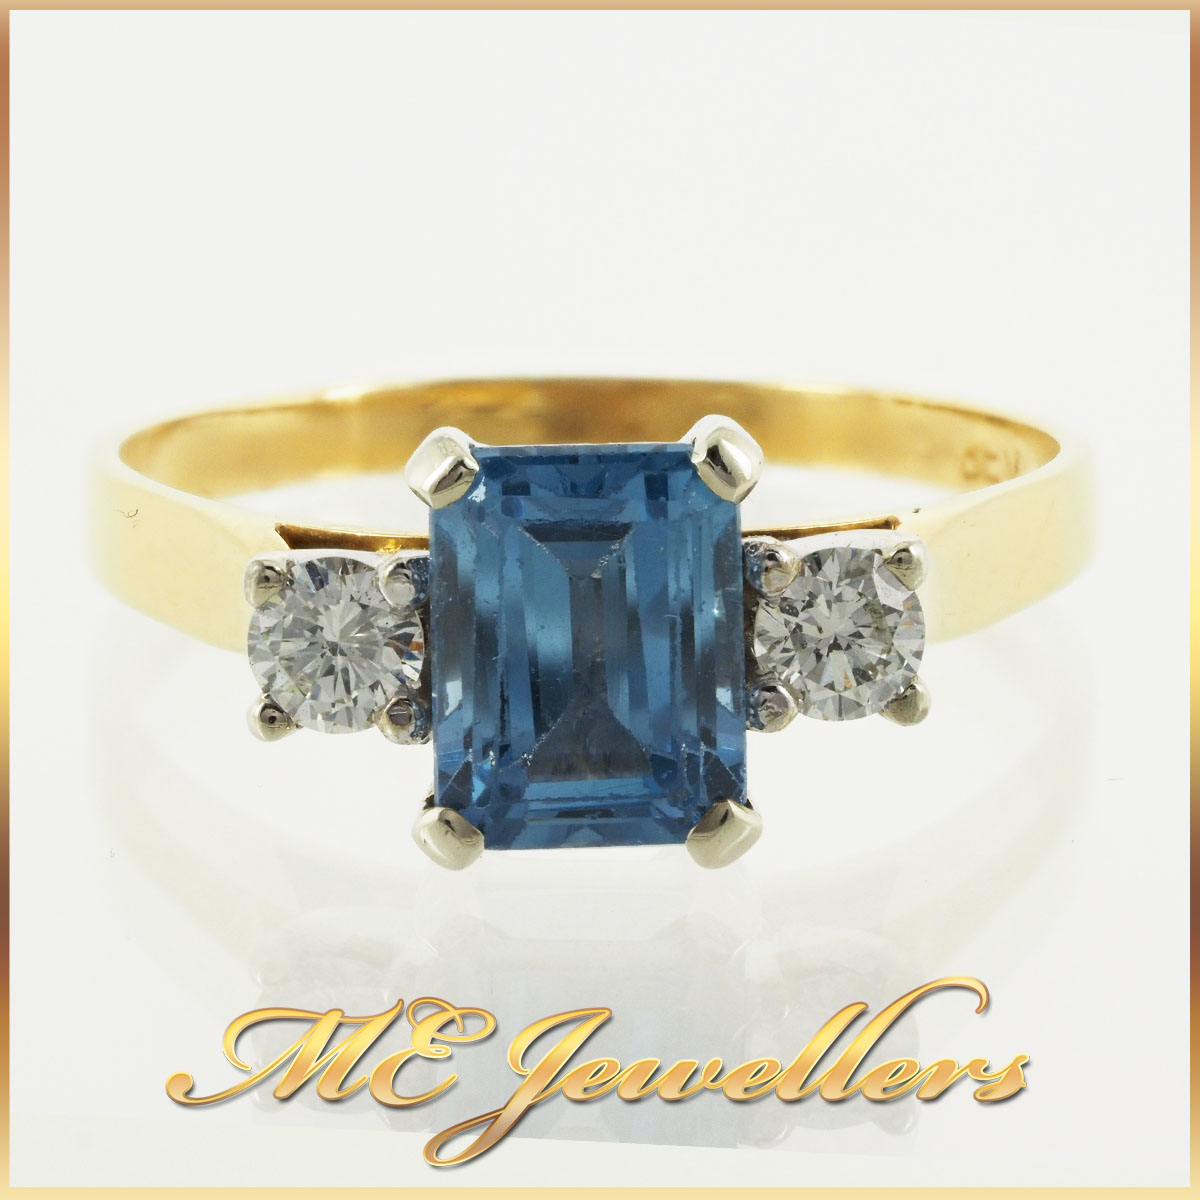 30 Blue Spinel Dress Ring With Diamonds In 18K YG and Palladium 4